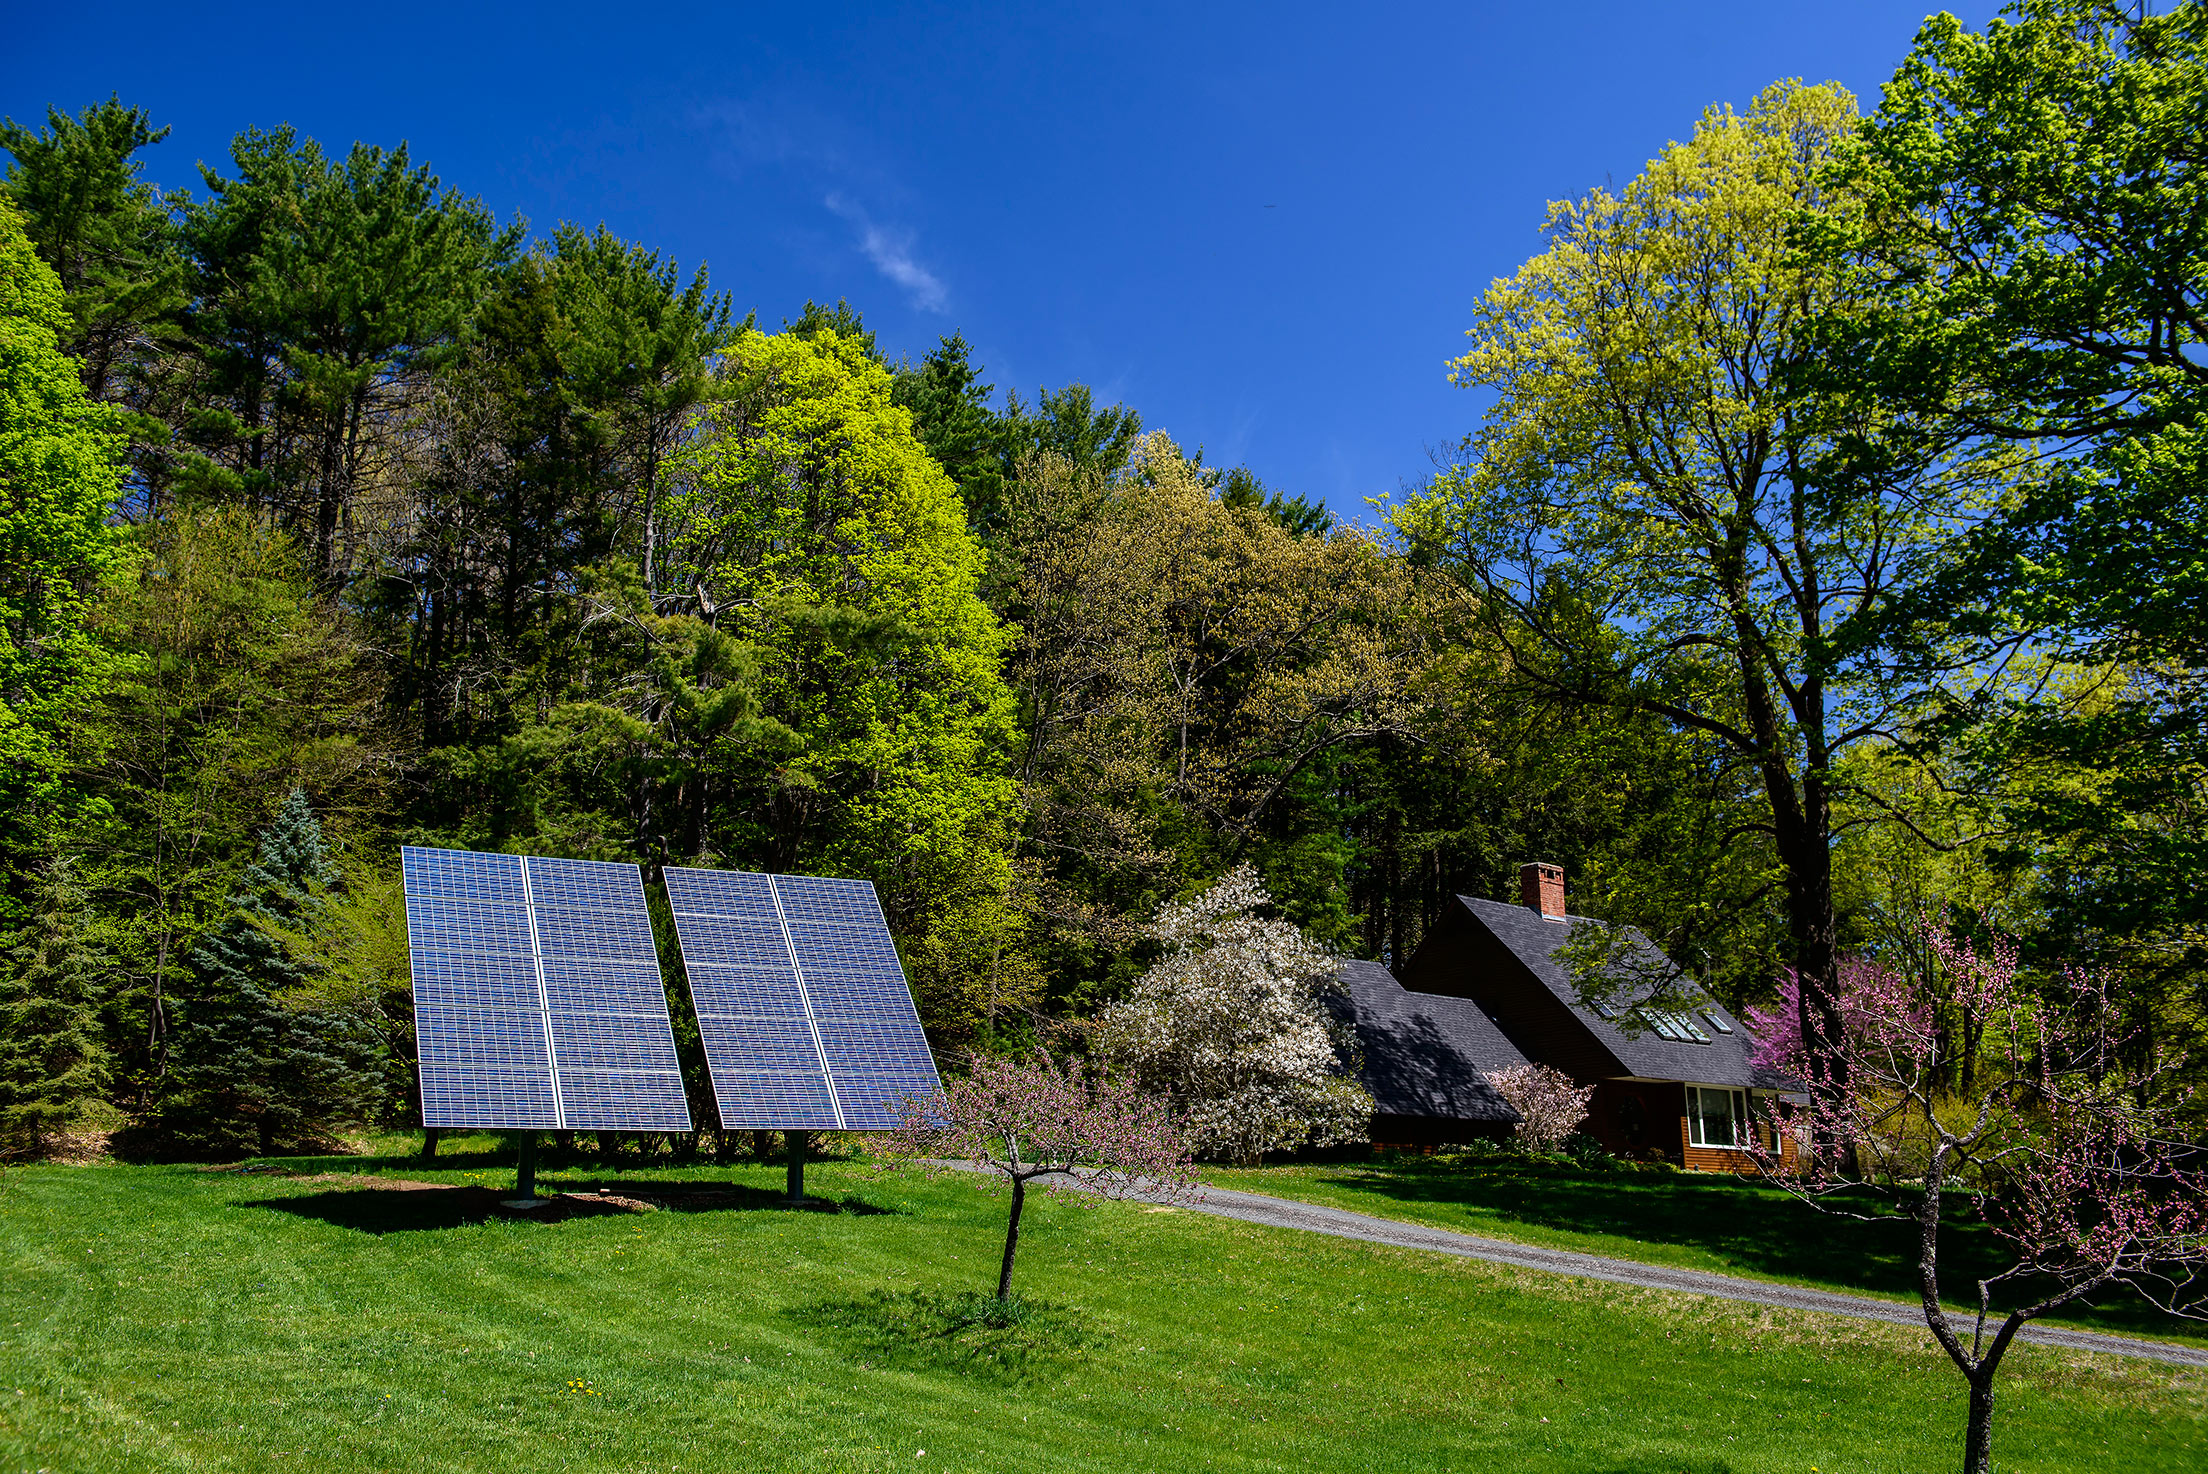 Can't Put Solar Panels On Your Roof? Community Solar